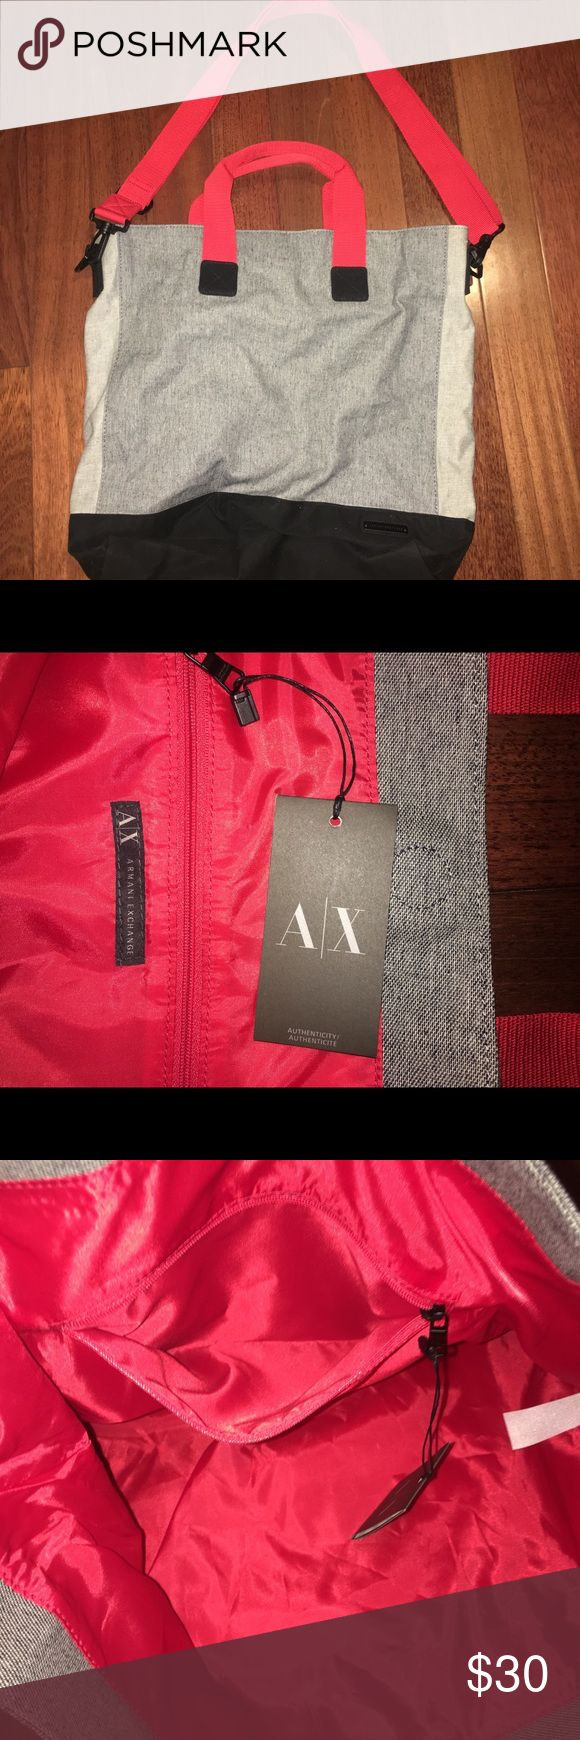 Armani Exchange Tote Bag (NWT) Large bucket tote in gray and black with red interior and handles + alternate cross body strap. Materials: 100% cotton, lining: 100% polyester Measurements; Length: 17' Width: 4' Height: 16' Handle drop: shorter 5', londer is adjustable and detachable' + magnetic snap closure, 2 handle fdrop, one adjustable and detachable long strap A/X Armani Exchange Bags Totes